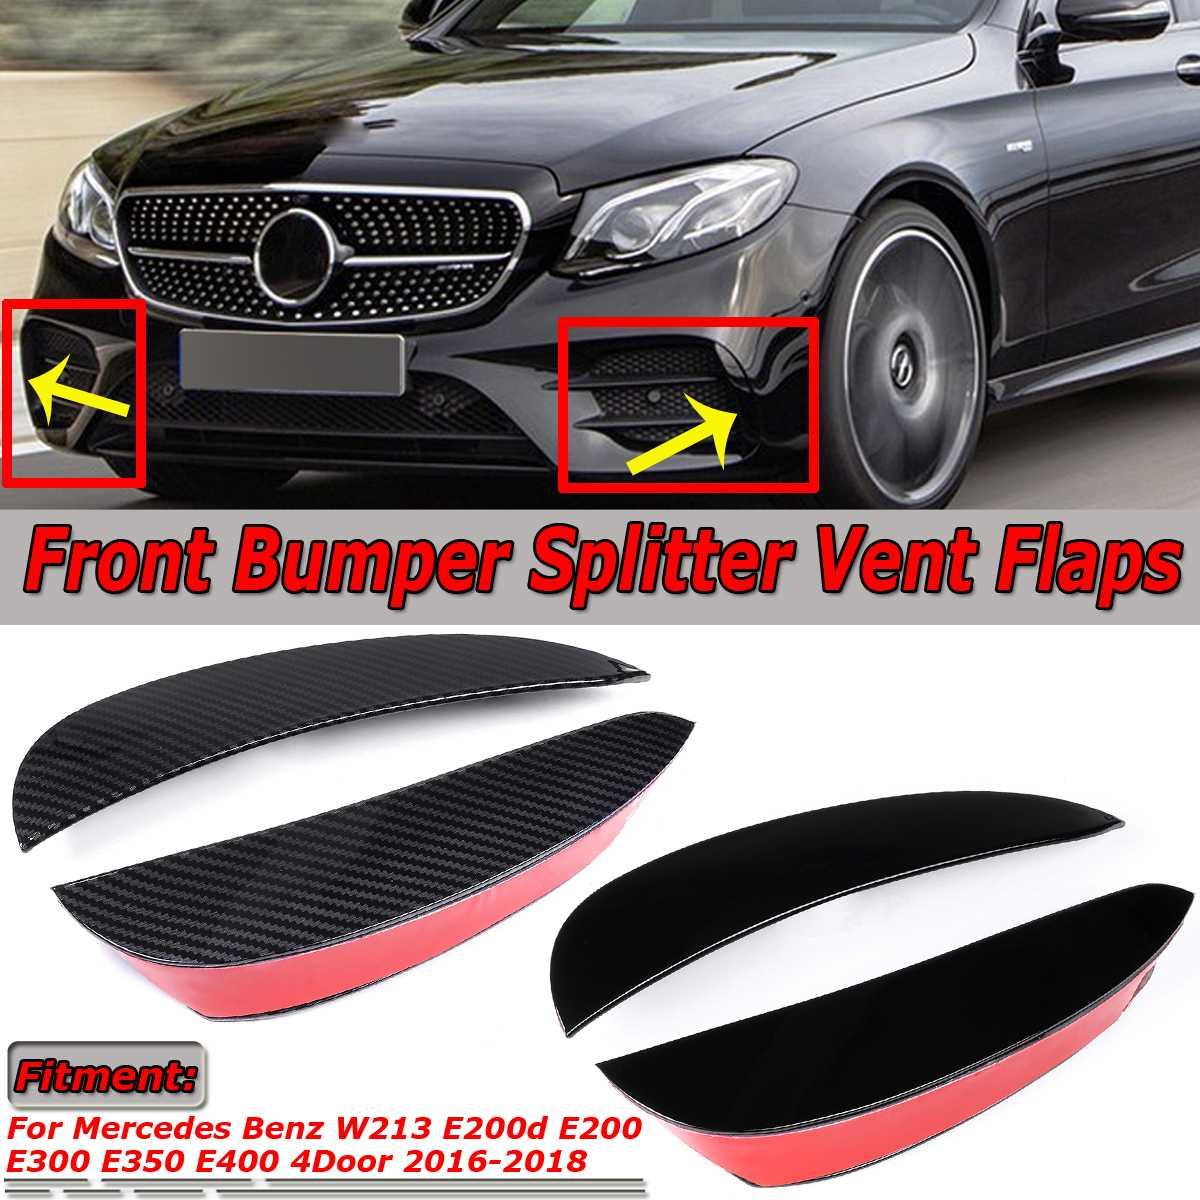 2x Car Front Bumper Lip Splitter Vent Flaps Spolier Fin For Mercedes For Benz E Class W213 E200 E300 E350 4Dr For AMG 2016-2018